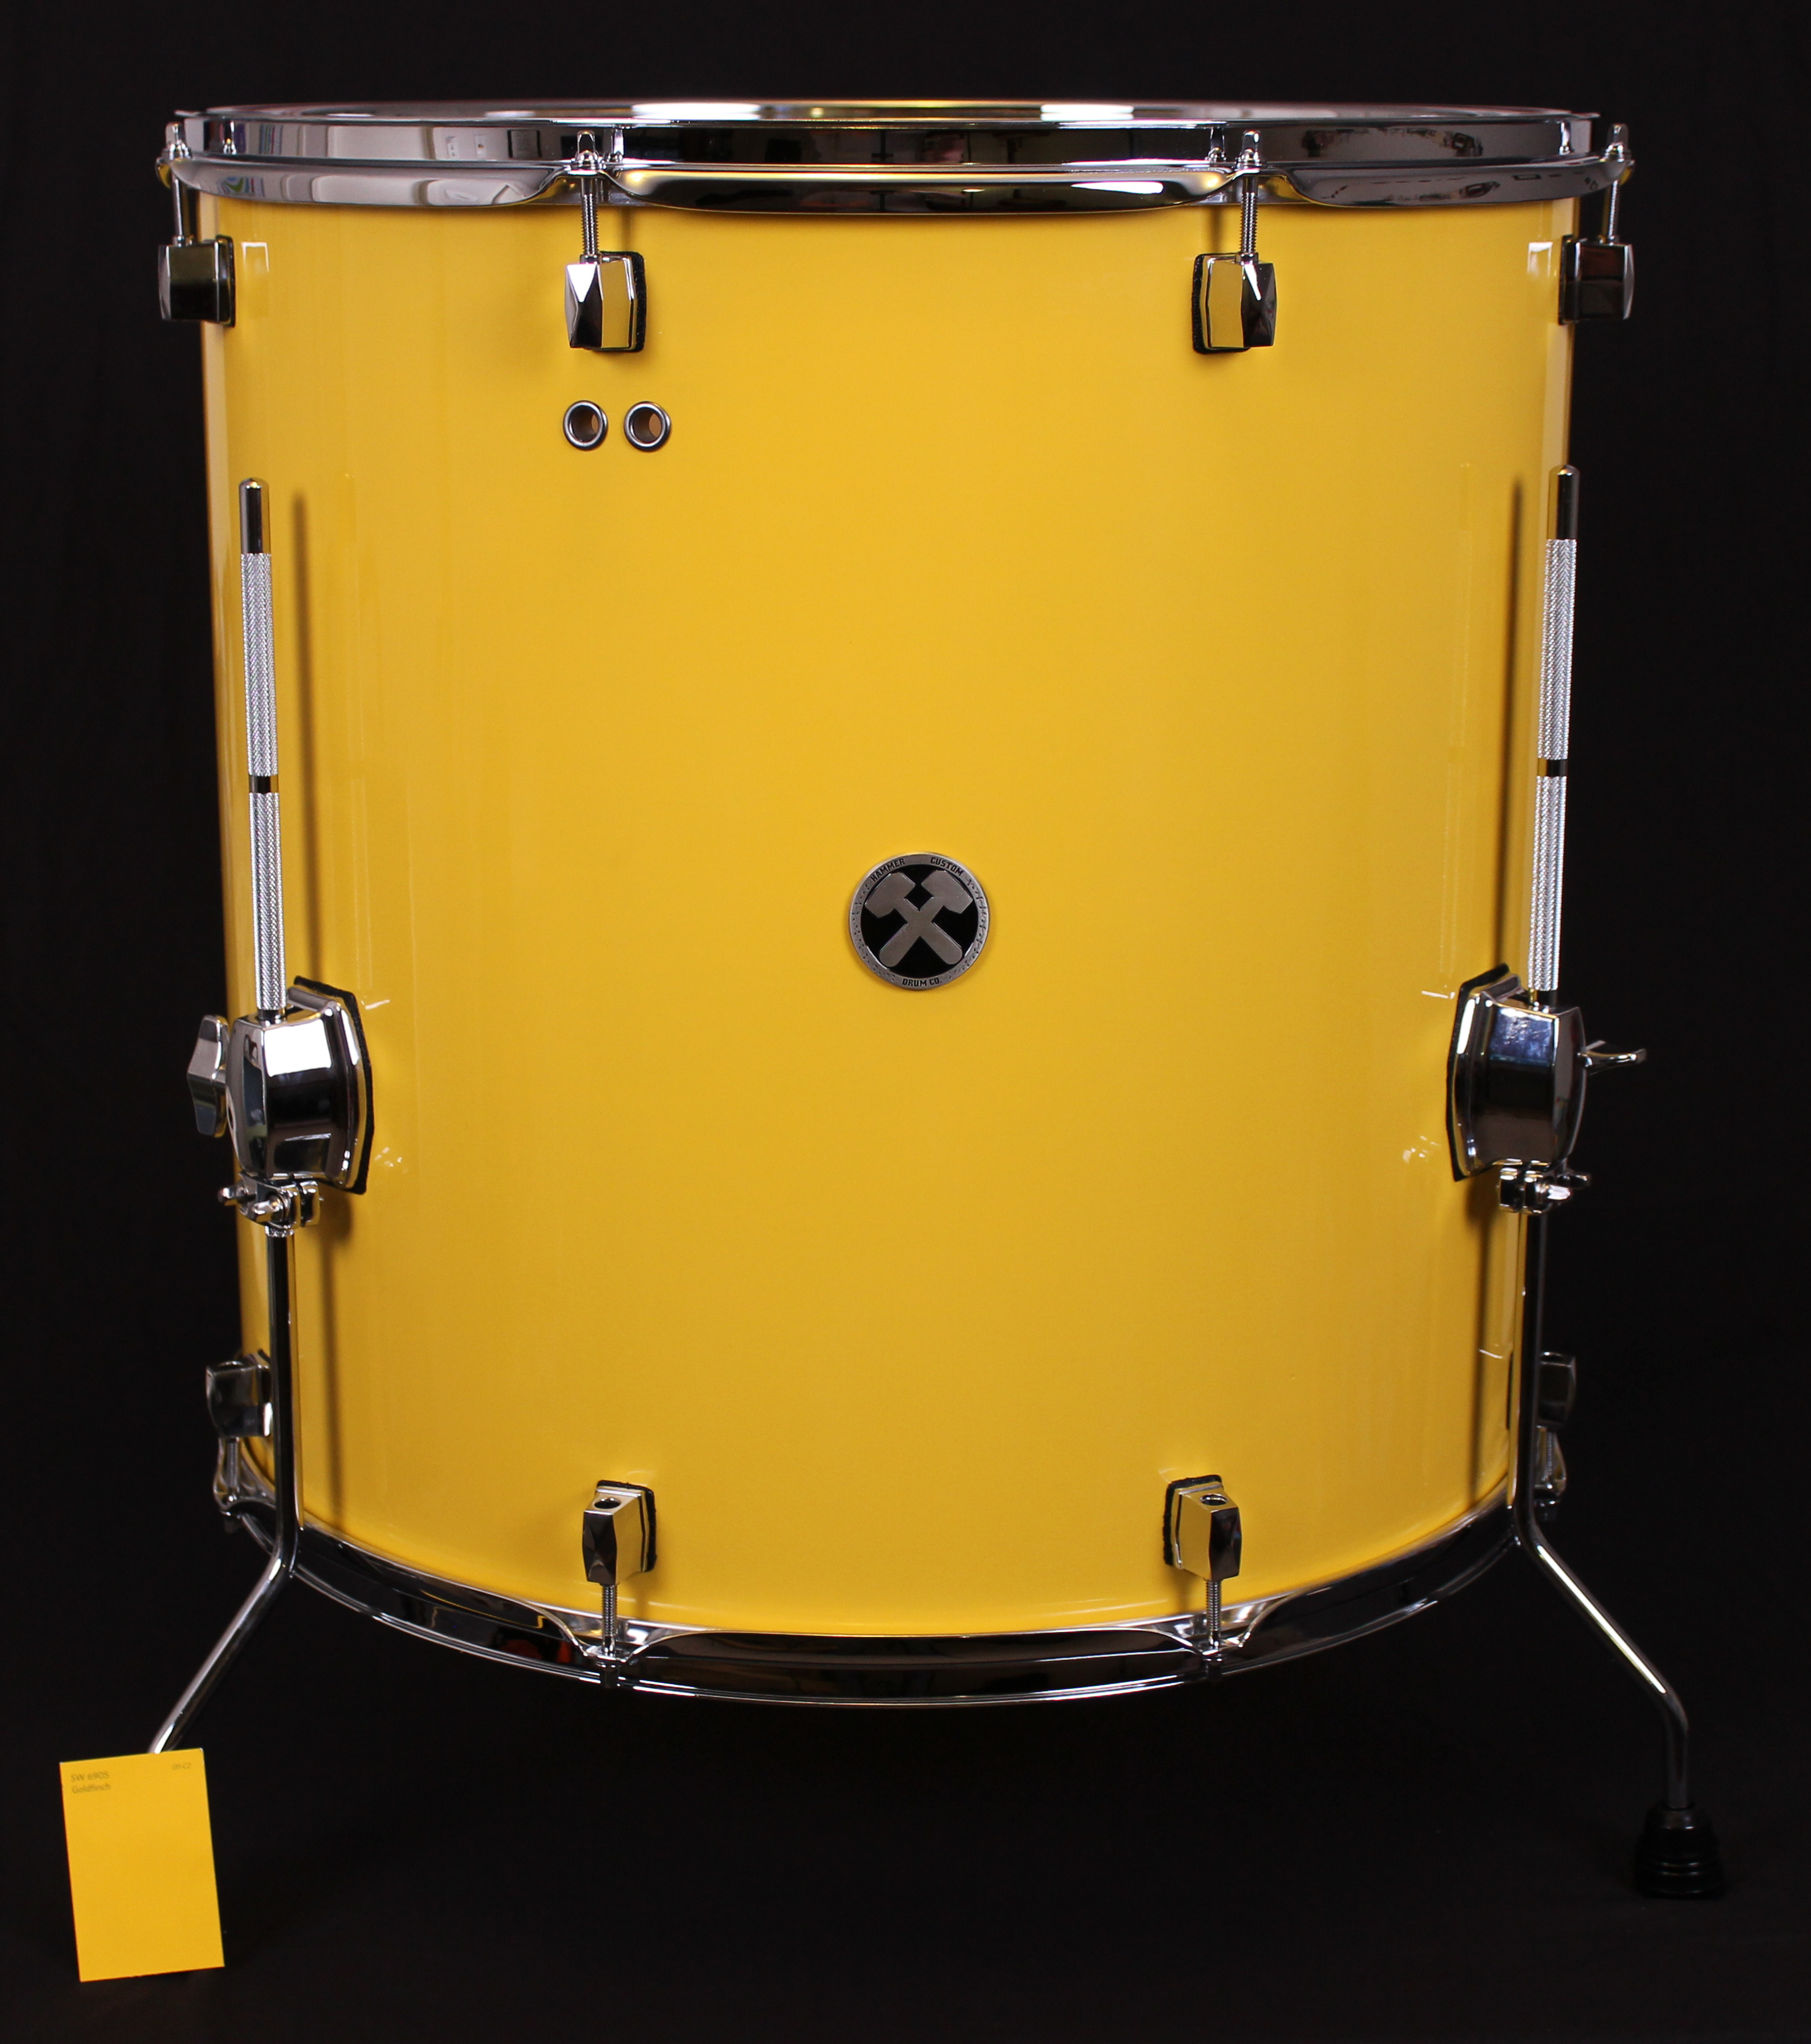 20x20 Big Yellow Drum Table